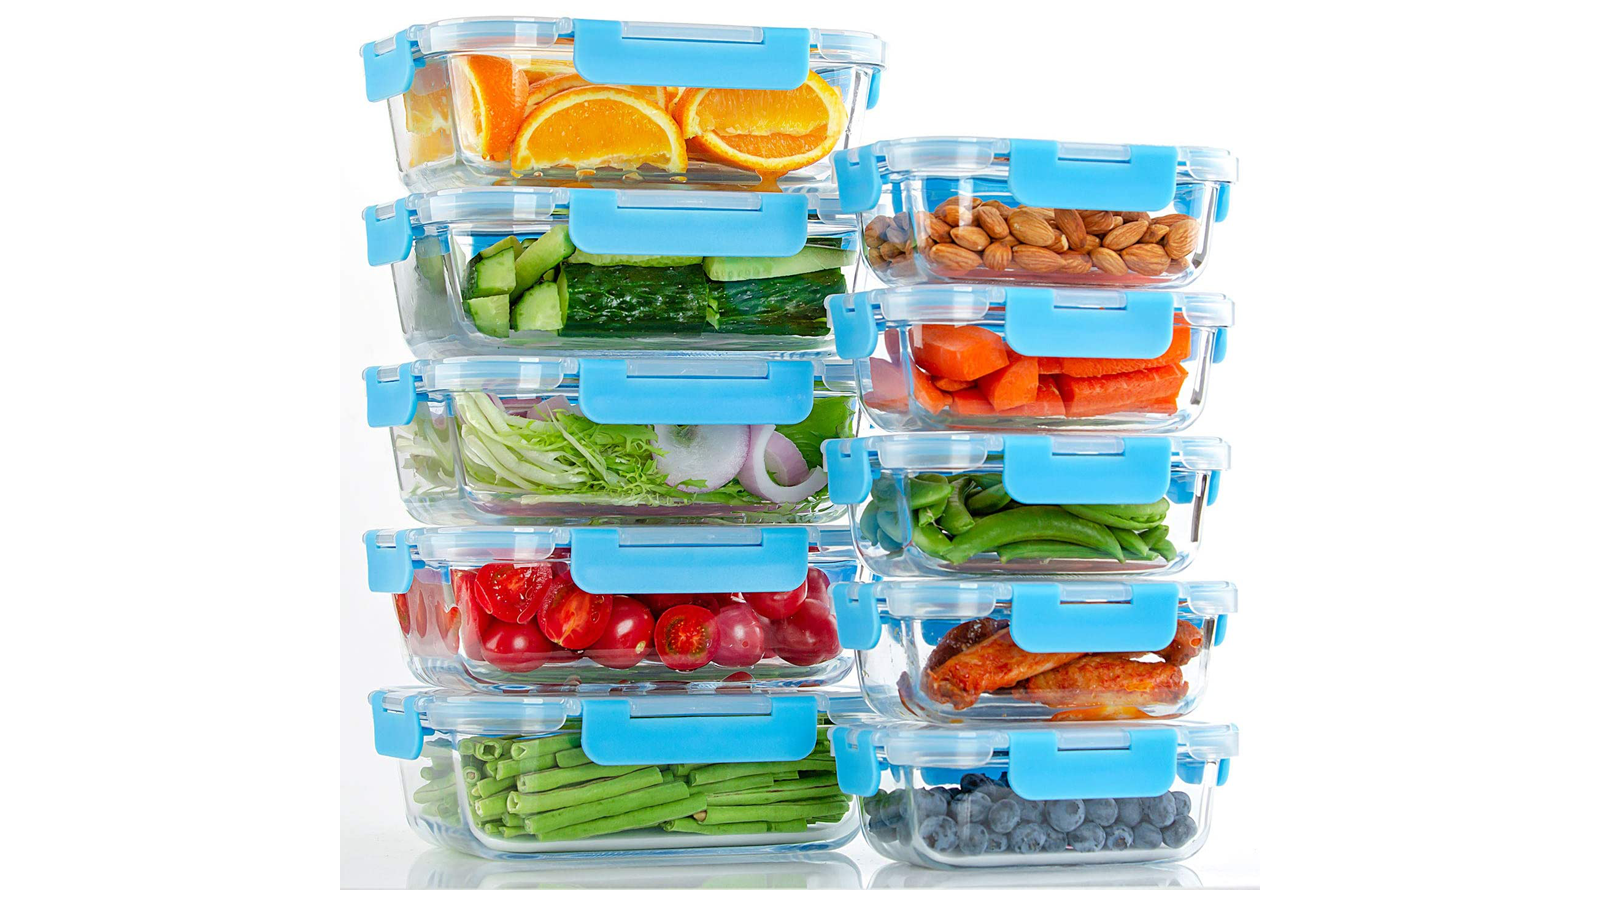 When Meal Prepping, Use These Amazing Glass Containers